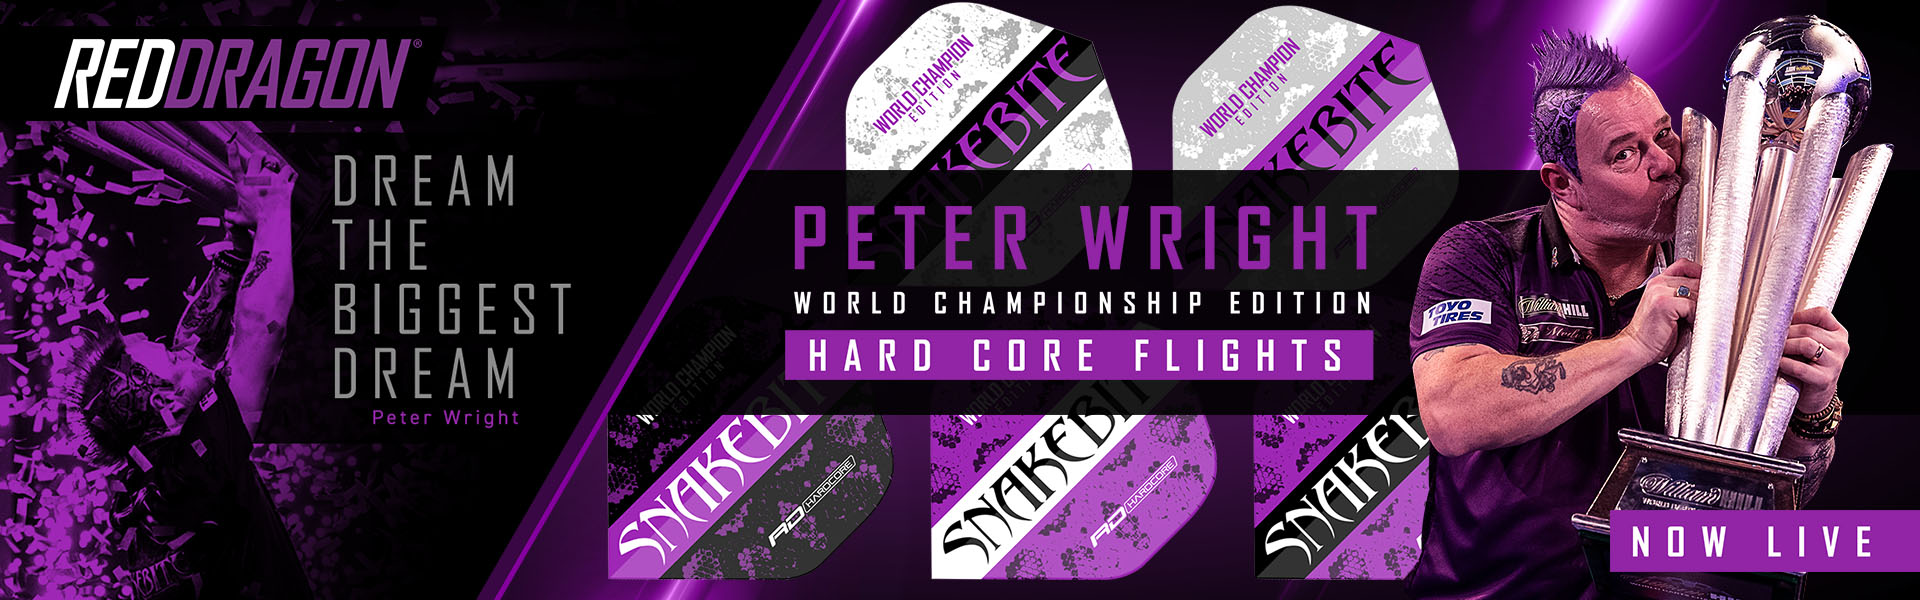 Peter Wright World Champion Flights Red Drago